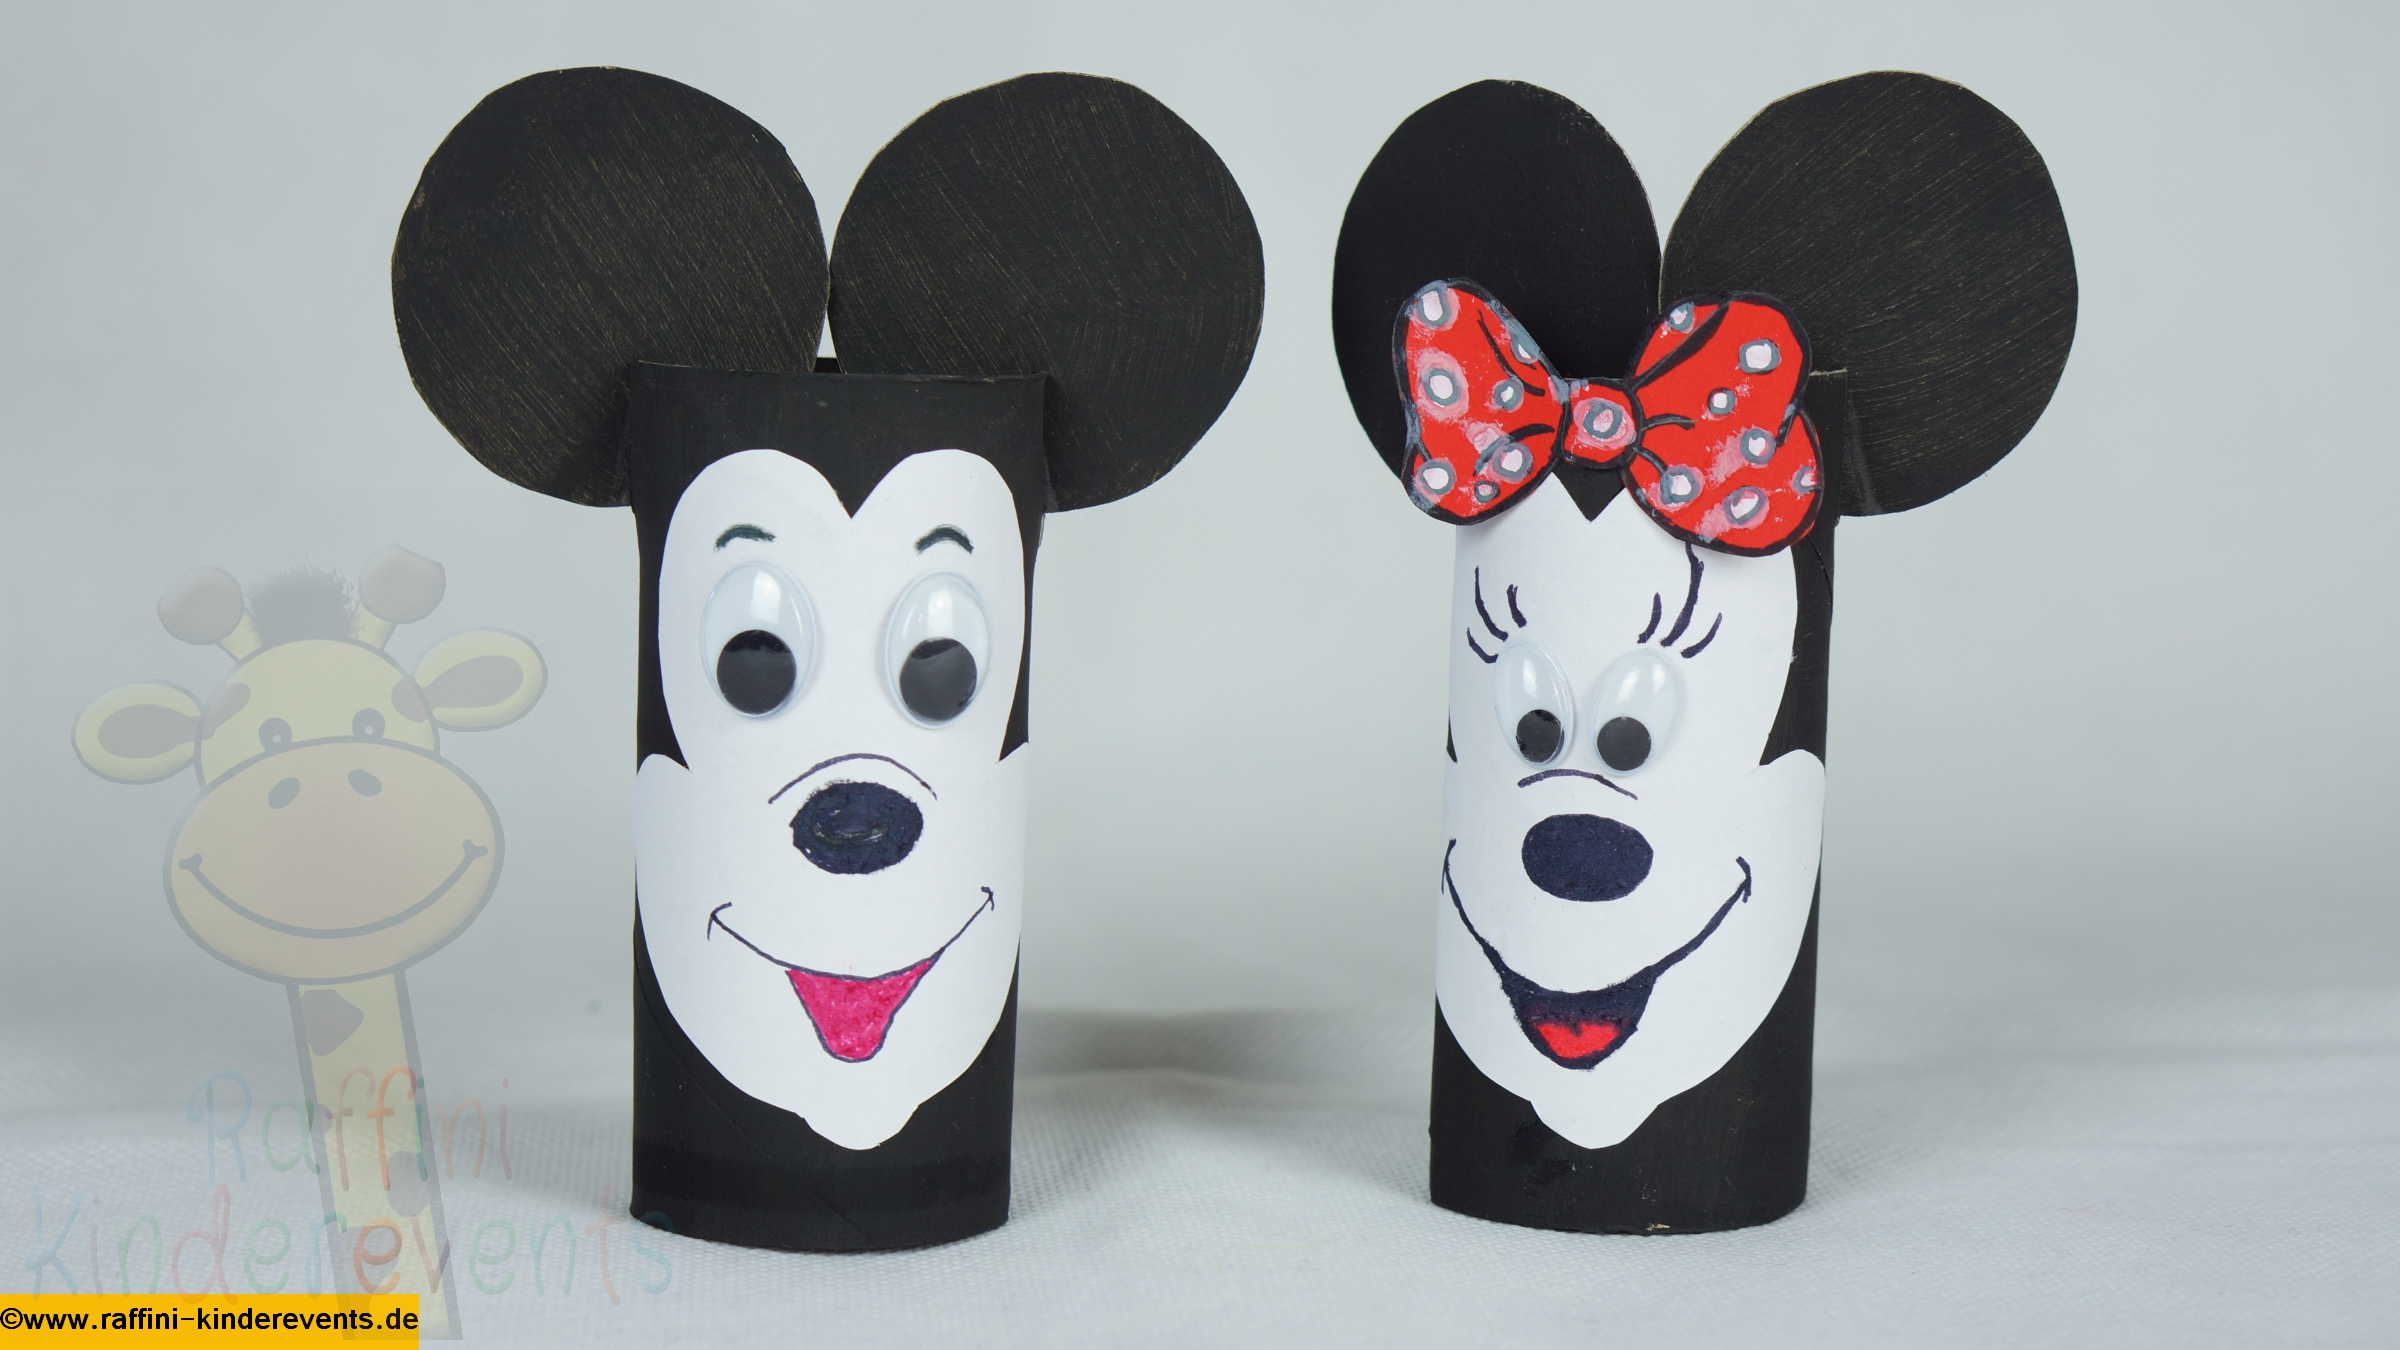 recycling basteln fuer kinder mickey mouse 01 raffini kinderevents kindereventagentur mannheim. Black Bedroom Furniture Sets. Home Design Ideas